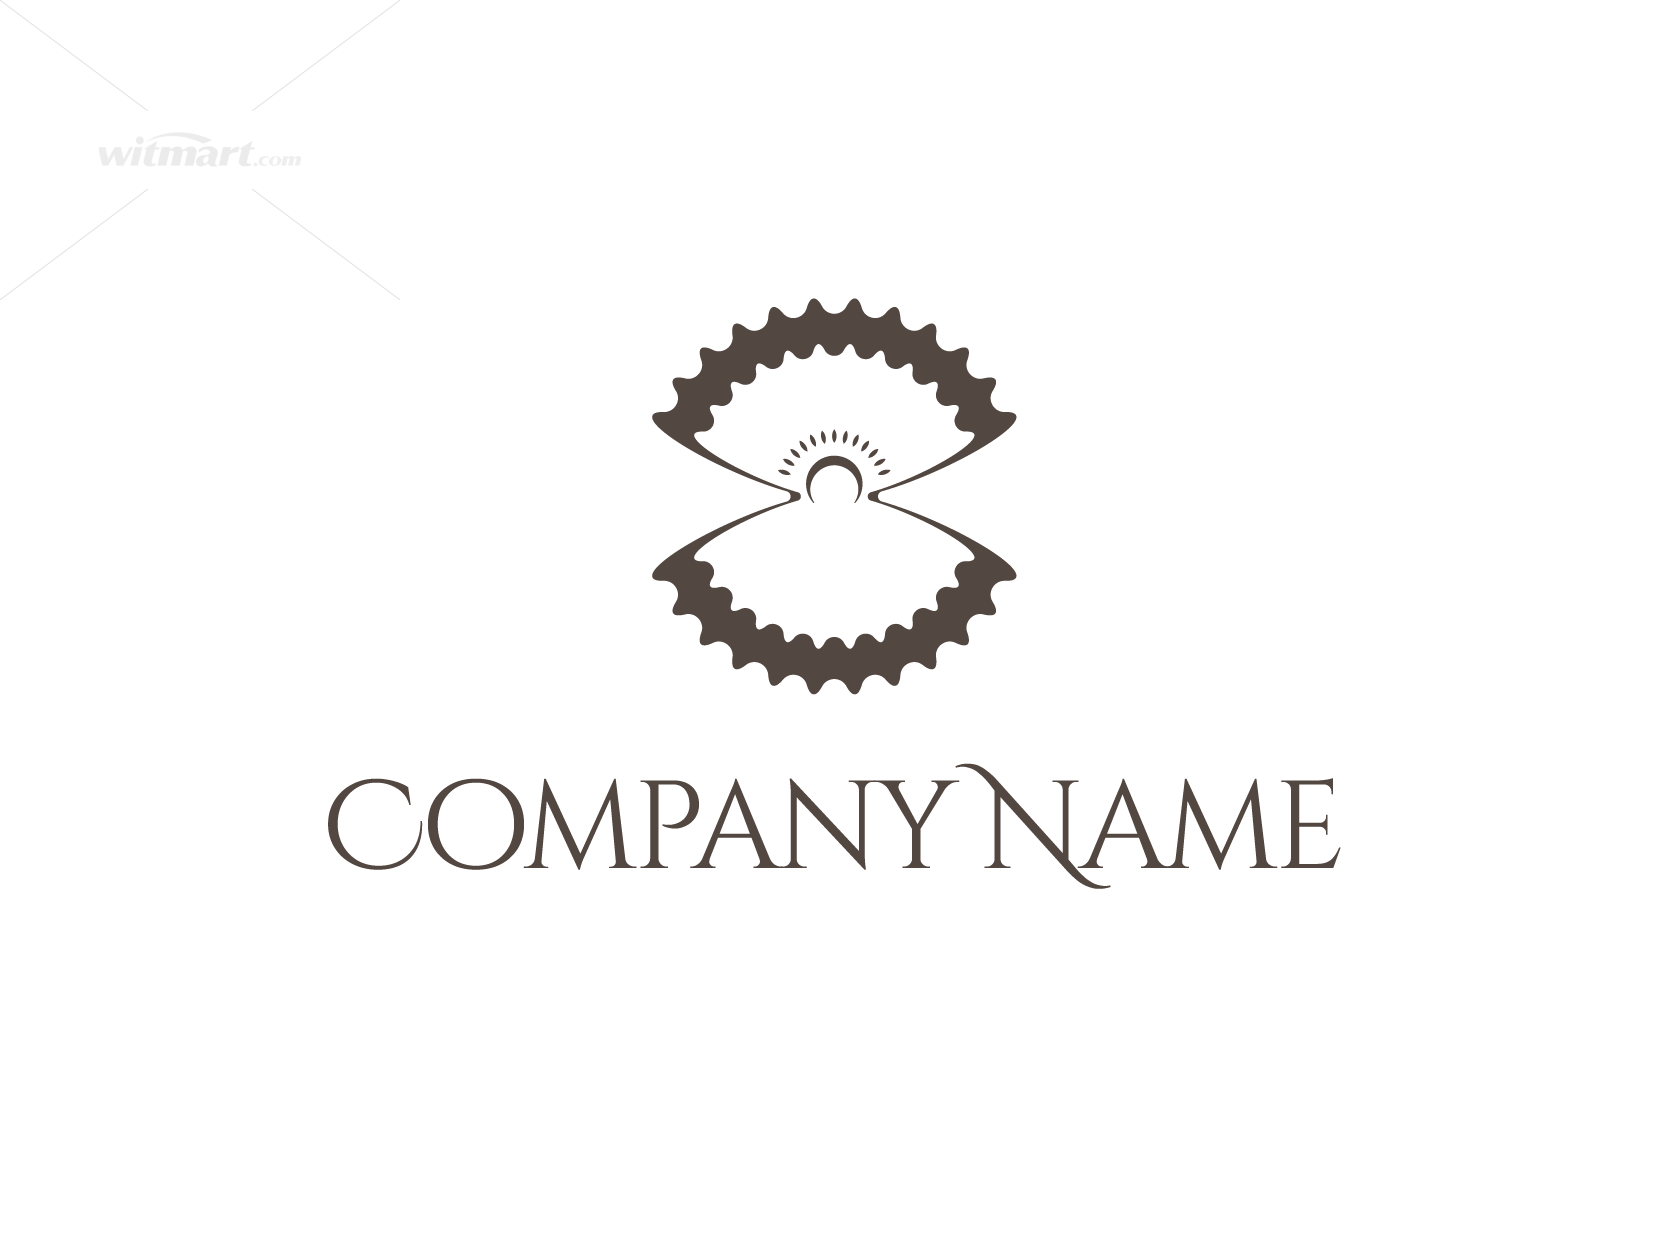 Designed by mrdesign1, a perfect logo for